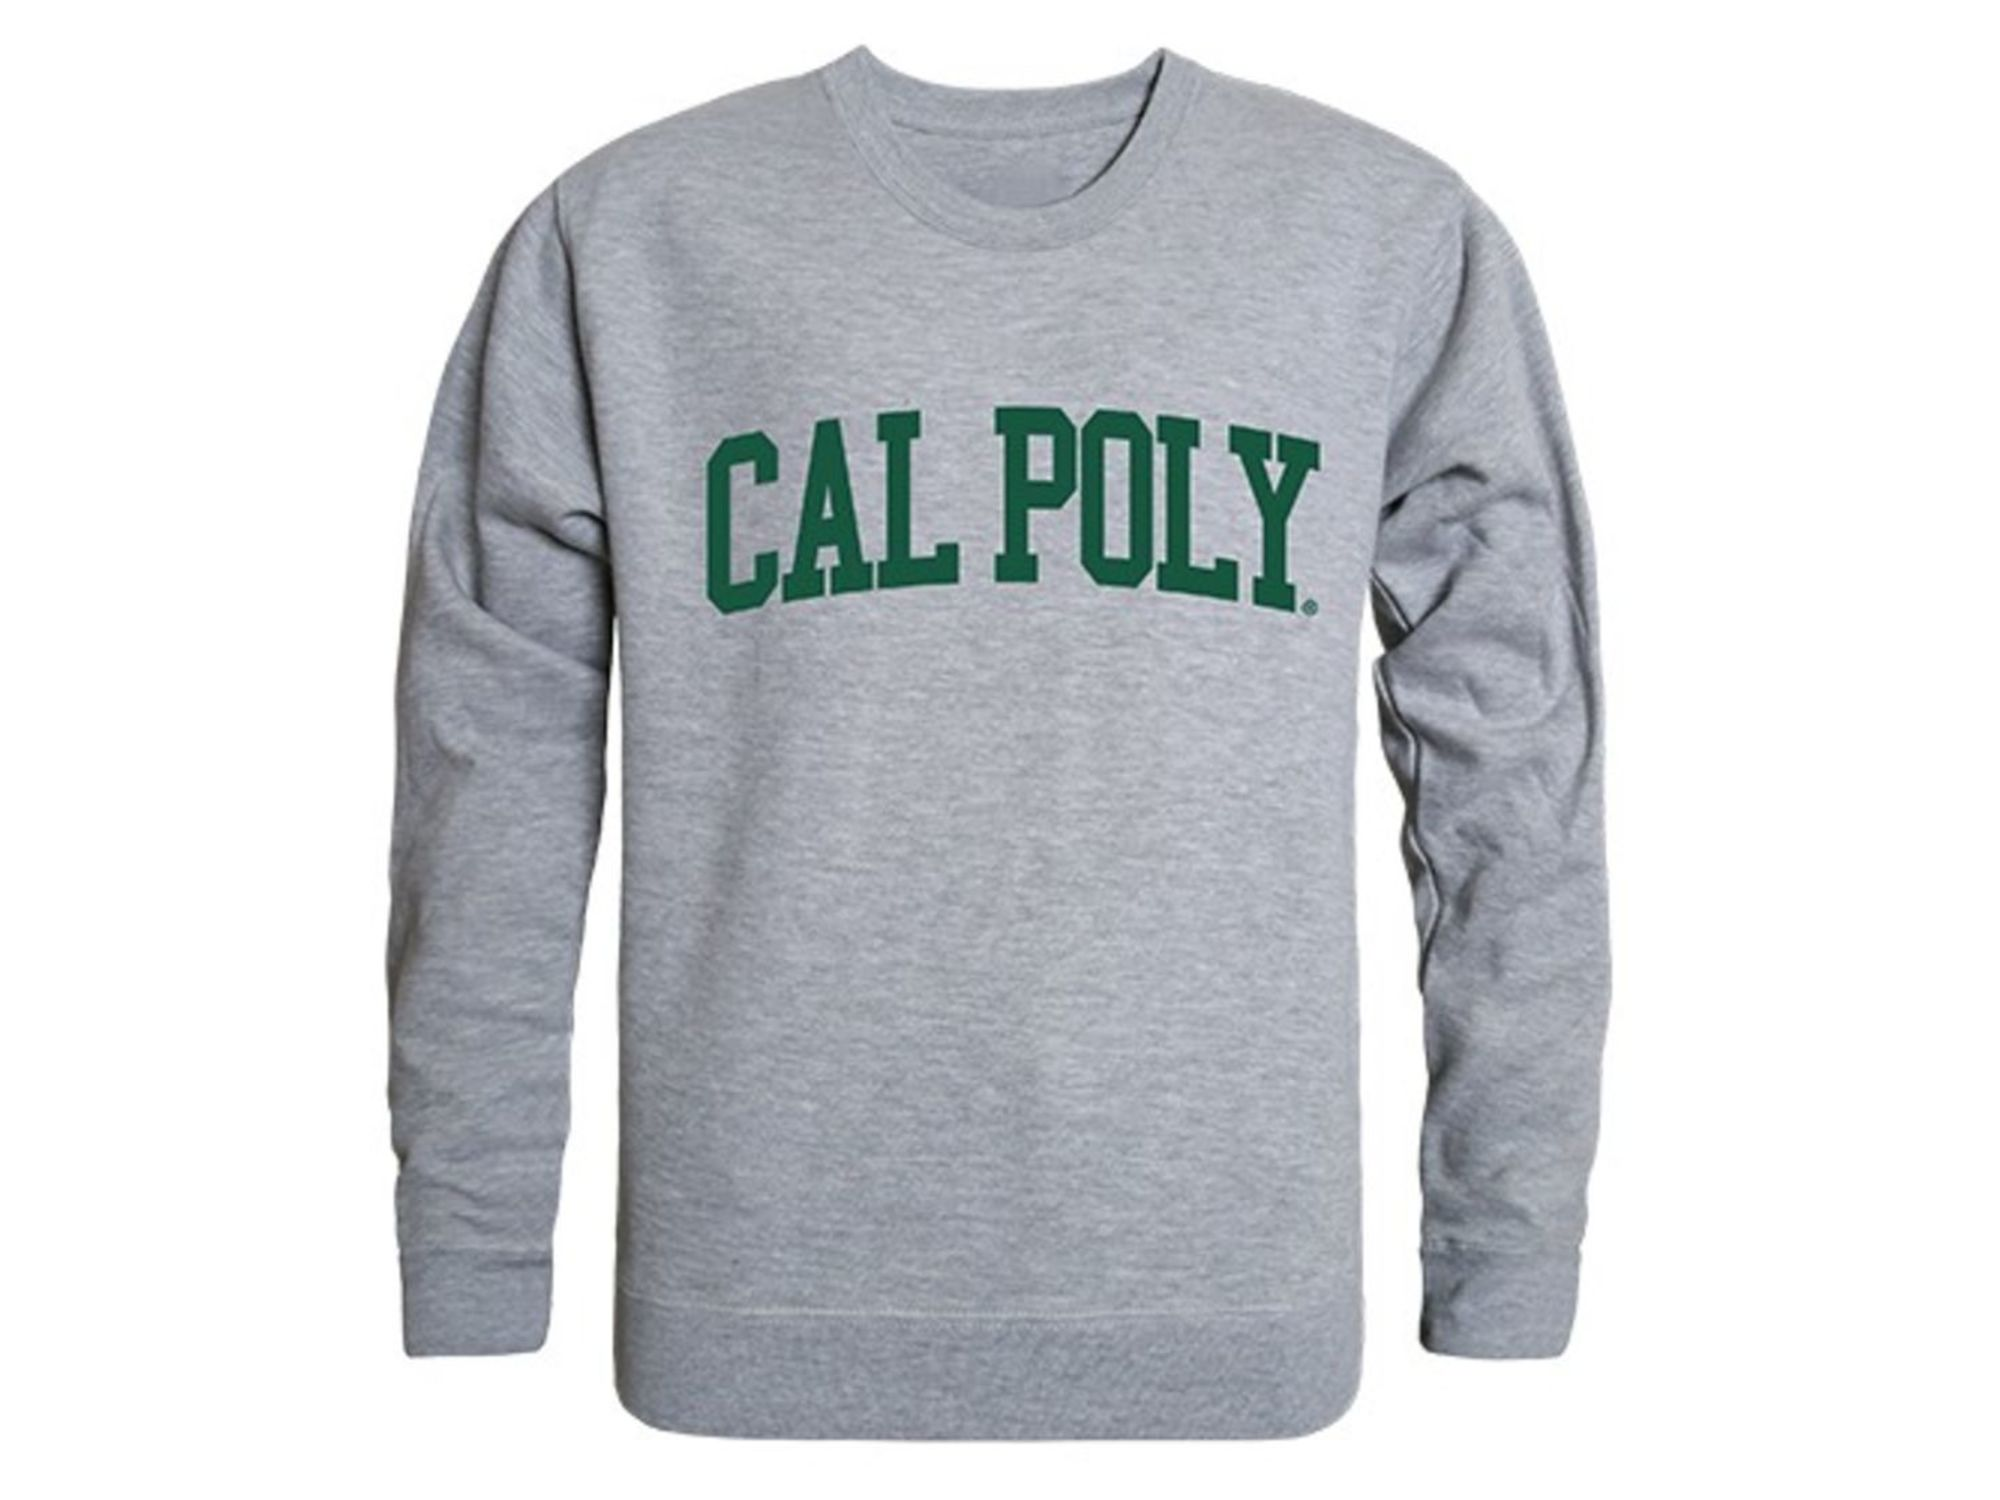 Cal Poly California Polytechnic State University Game Day Crewneck Pullover Sweatshirt Sweater